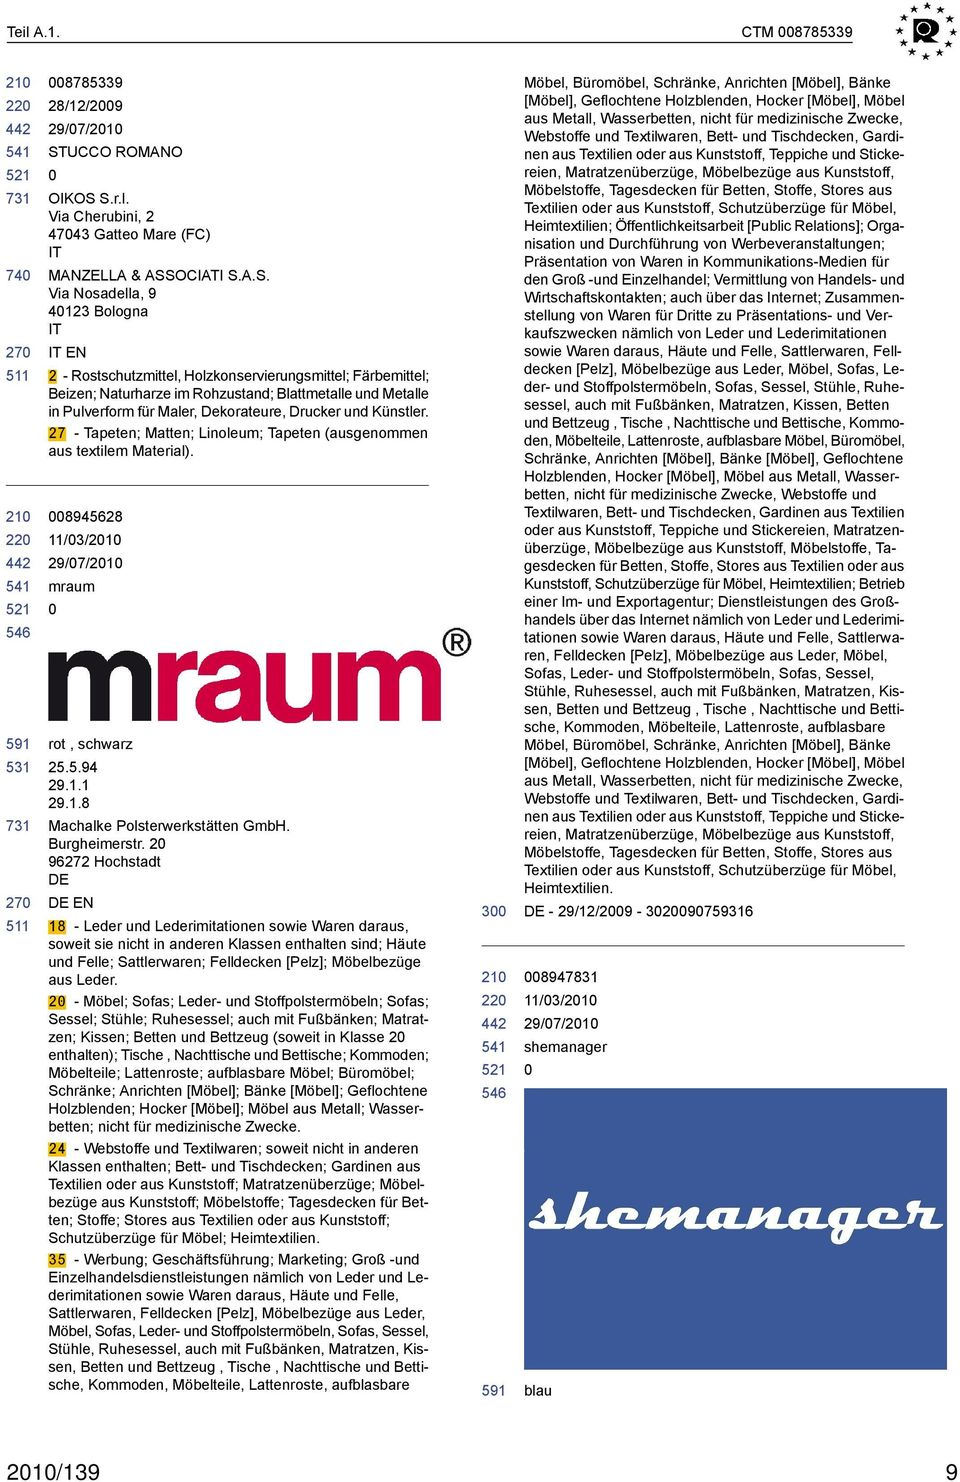 S.r.l. Via Cherubini, 2 4743 Gatteo Mare (FC) IT MANZELLA & ASSOCIATI S.A.S. Via Nosadella, 9 4123 Bologna IT IT EN 2 - Rostschutzmittel, Holzkonservierungsmittel; Färbemittel; Beizen; Naturharze im